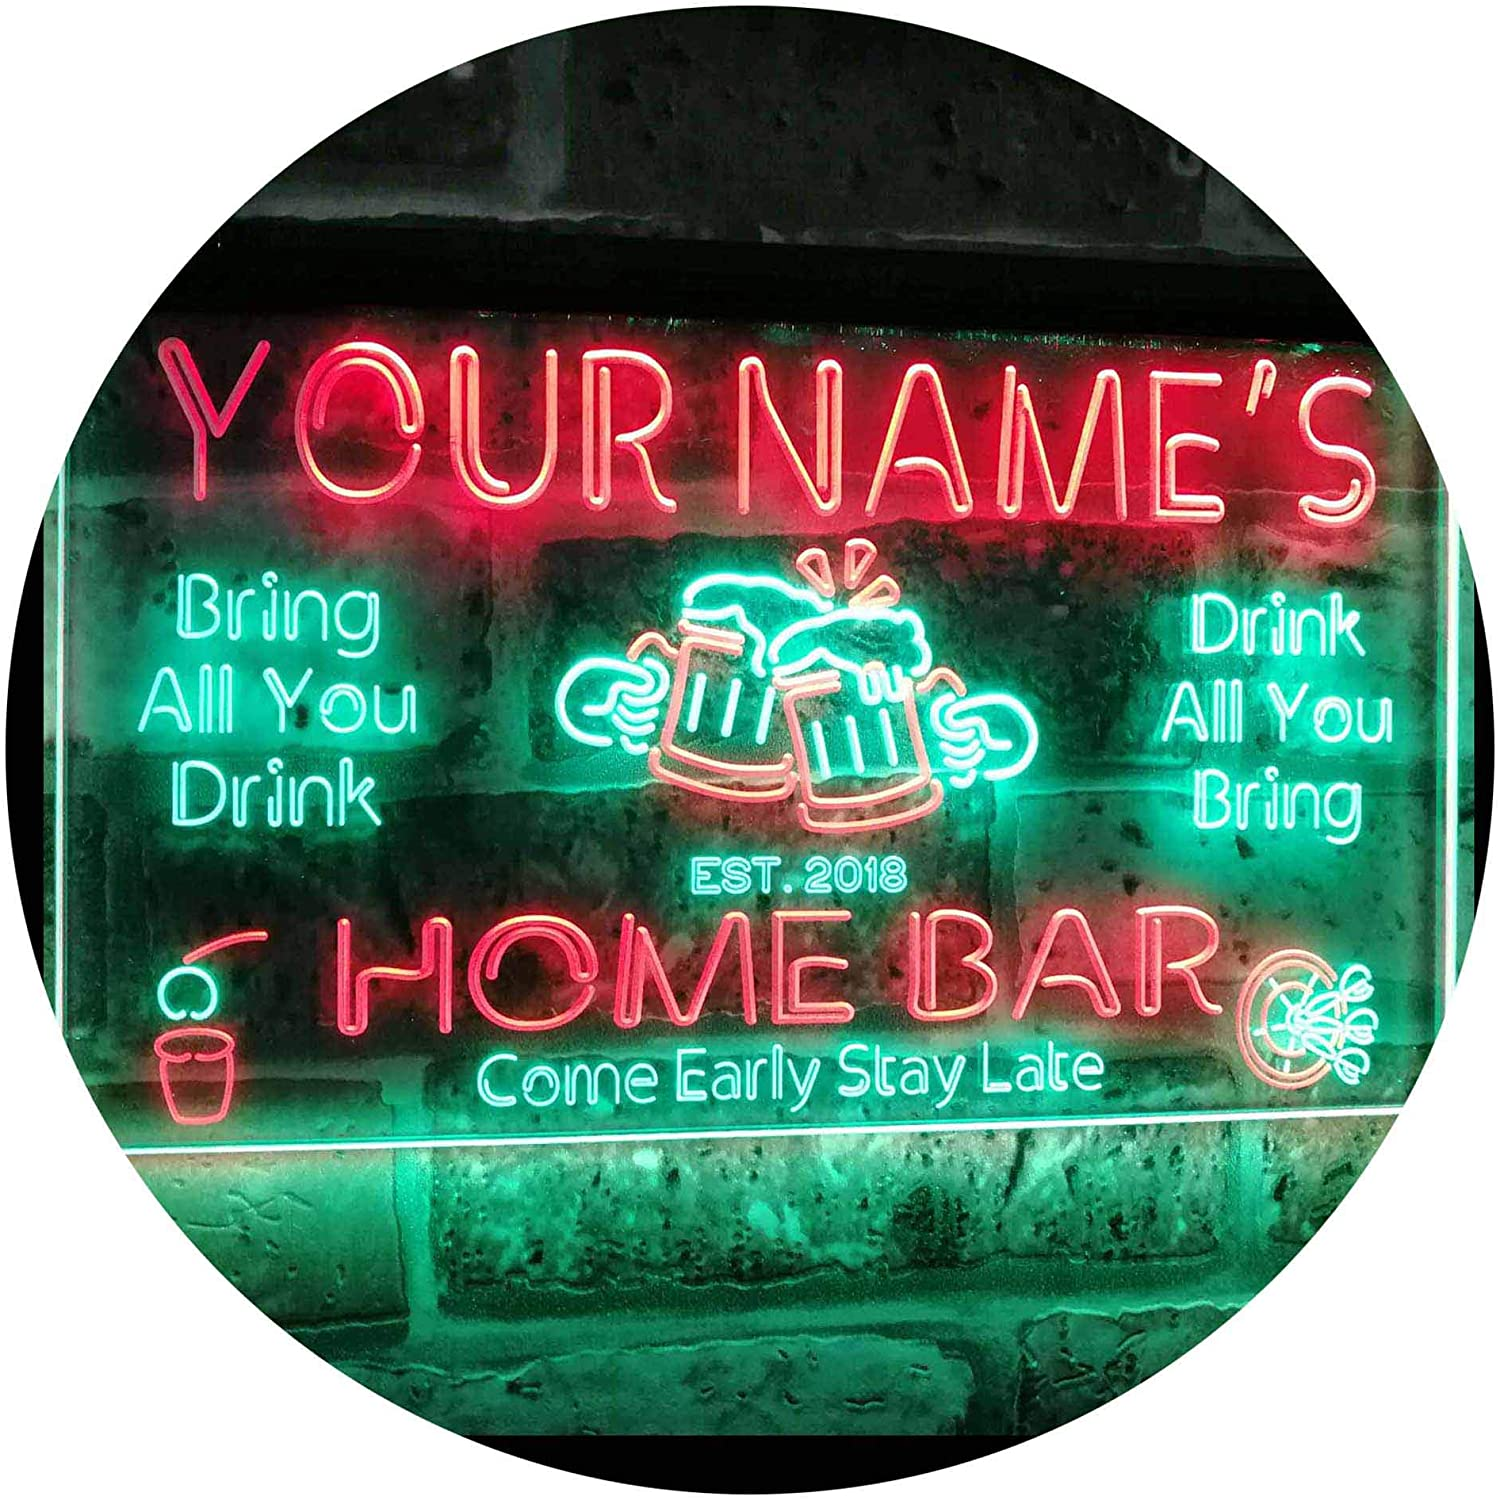 ADVPRO Personalized Your Name Custom Home Bar Beer Established Year Dual Color LED Neon Sign Green & Red 16 x 12 Inches st6s43-p1-tm-gr